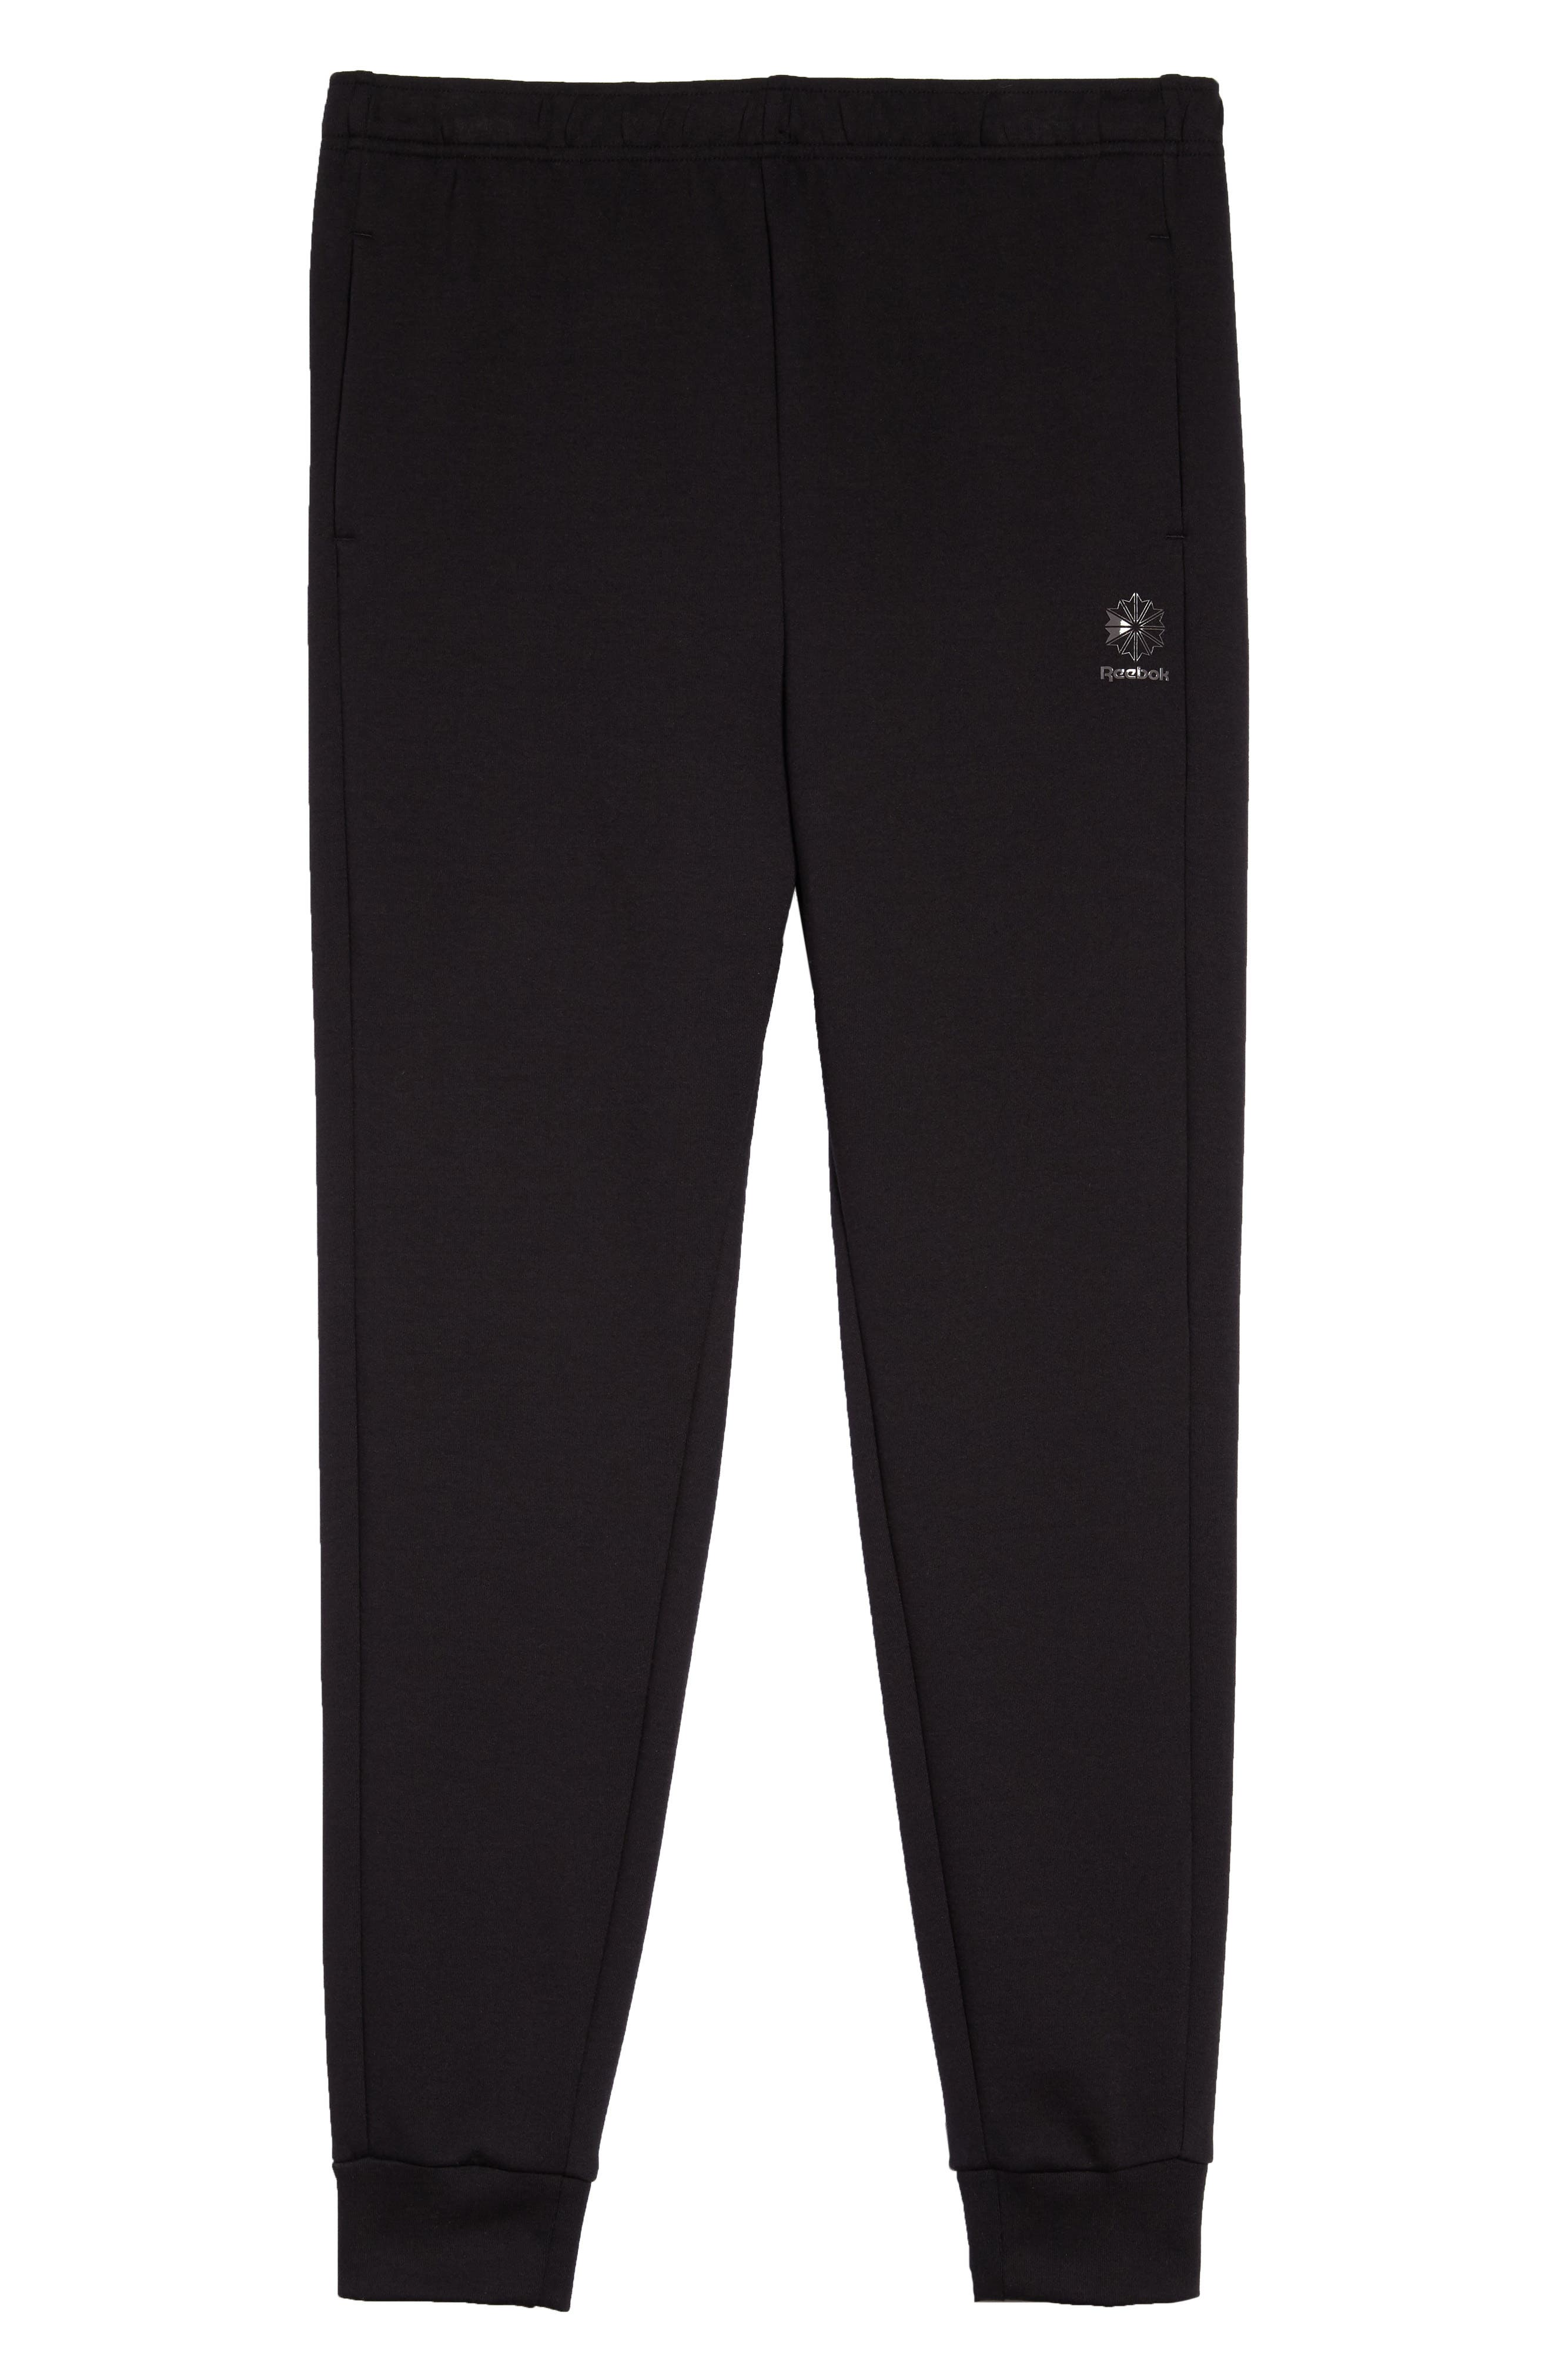 Classic Dynamic Knit Jogger Pants,                             Alternate thumbnail 6, color,                             005